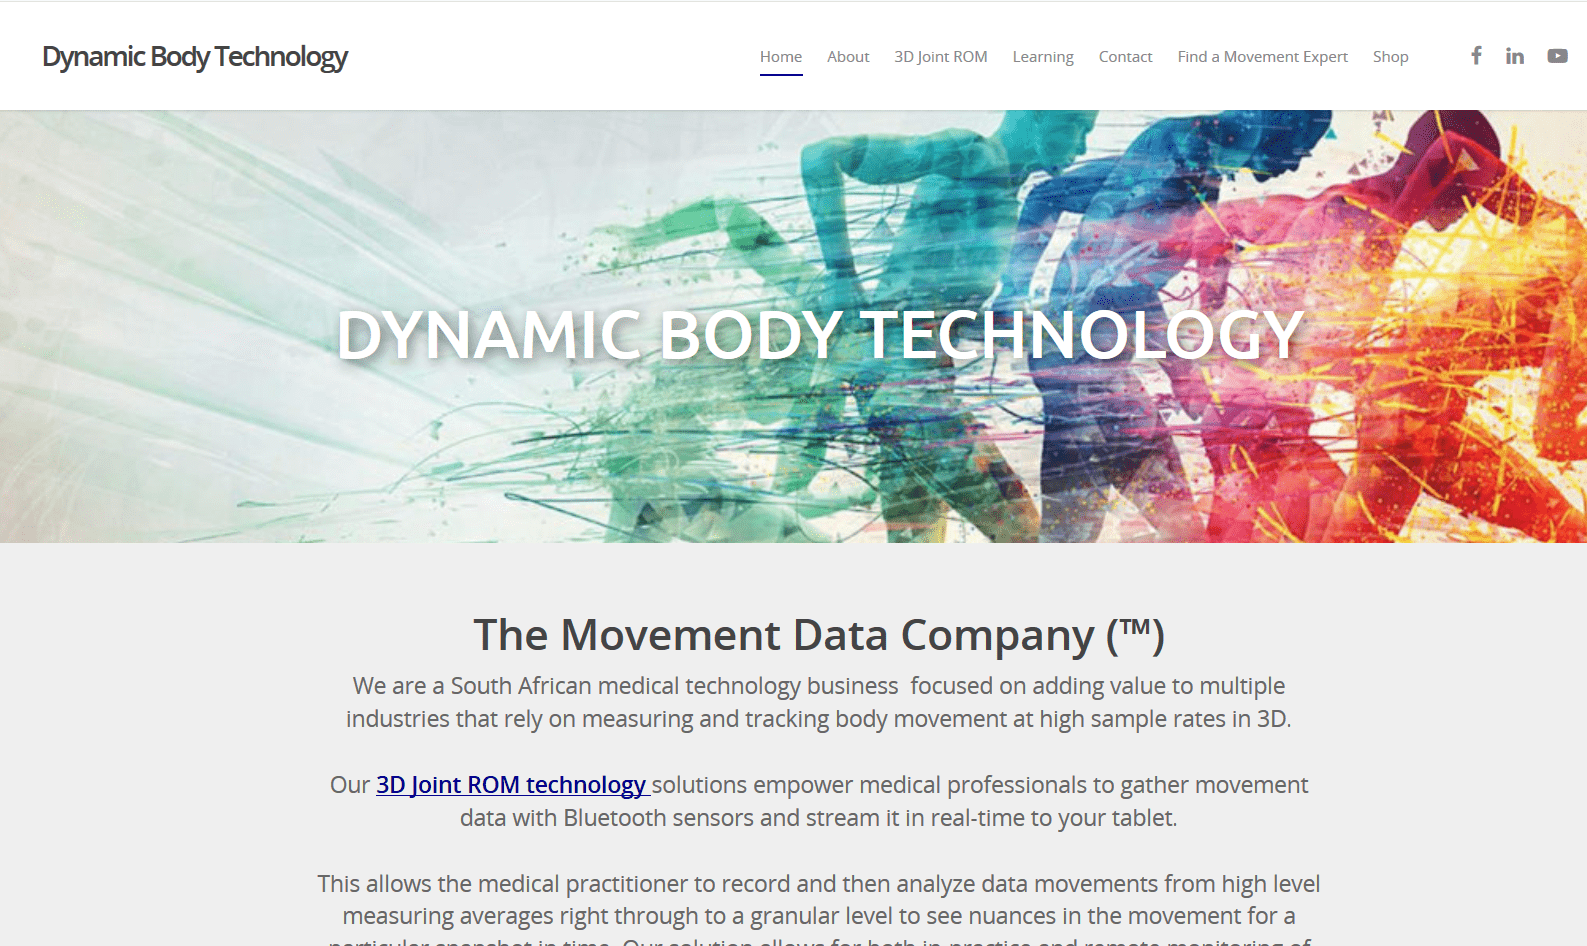 Dynamic Body Technology